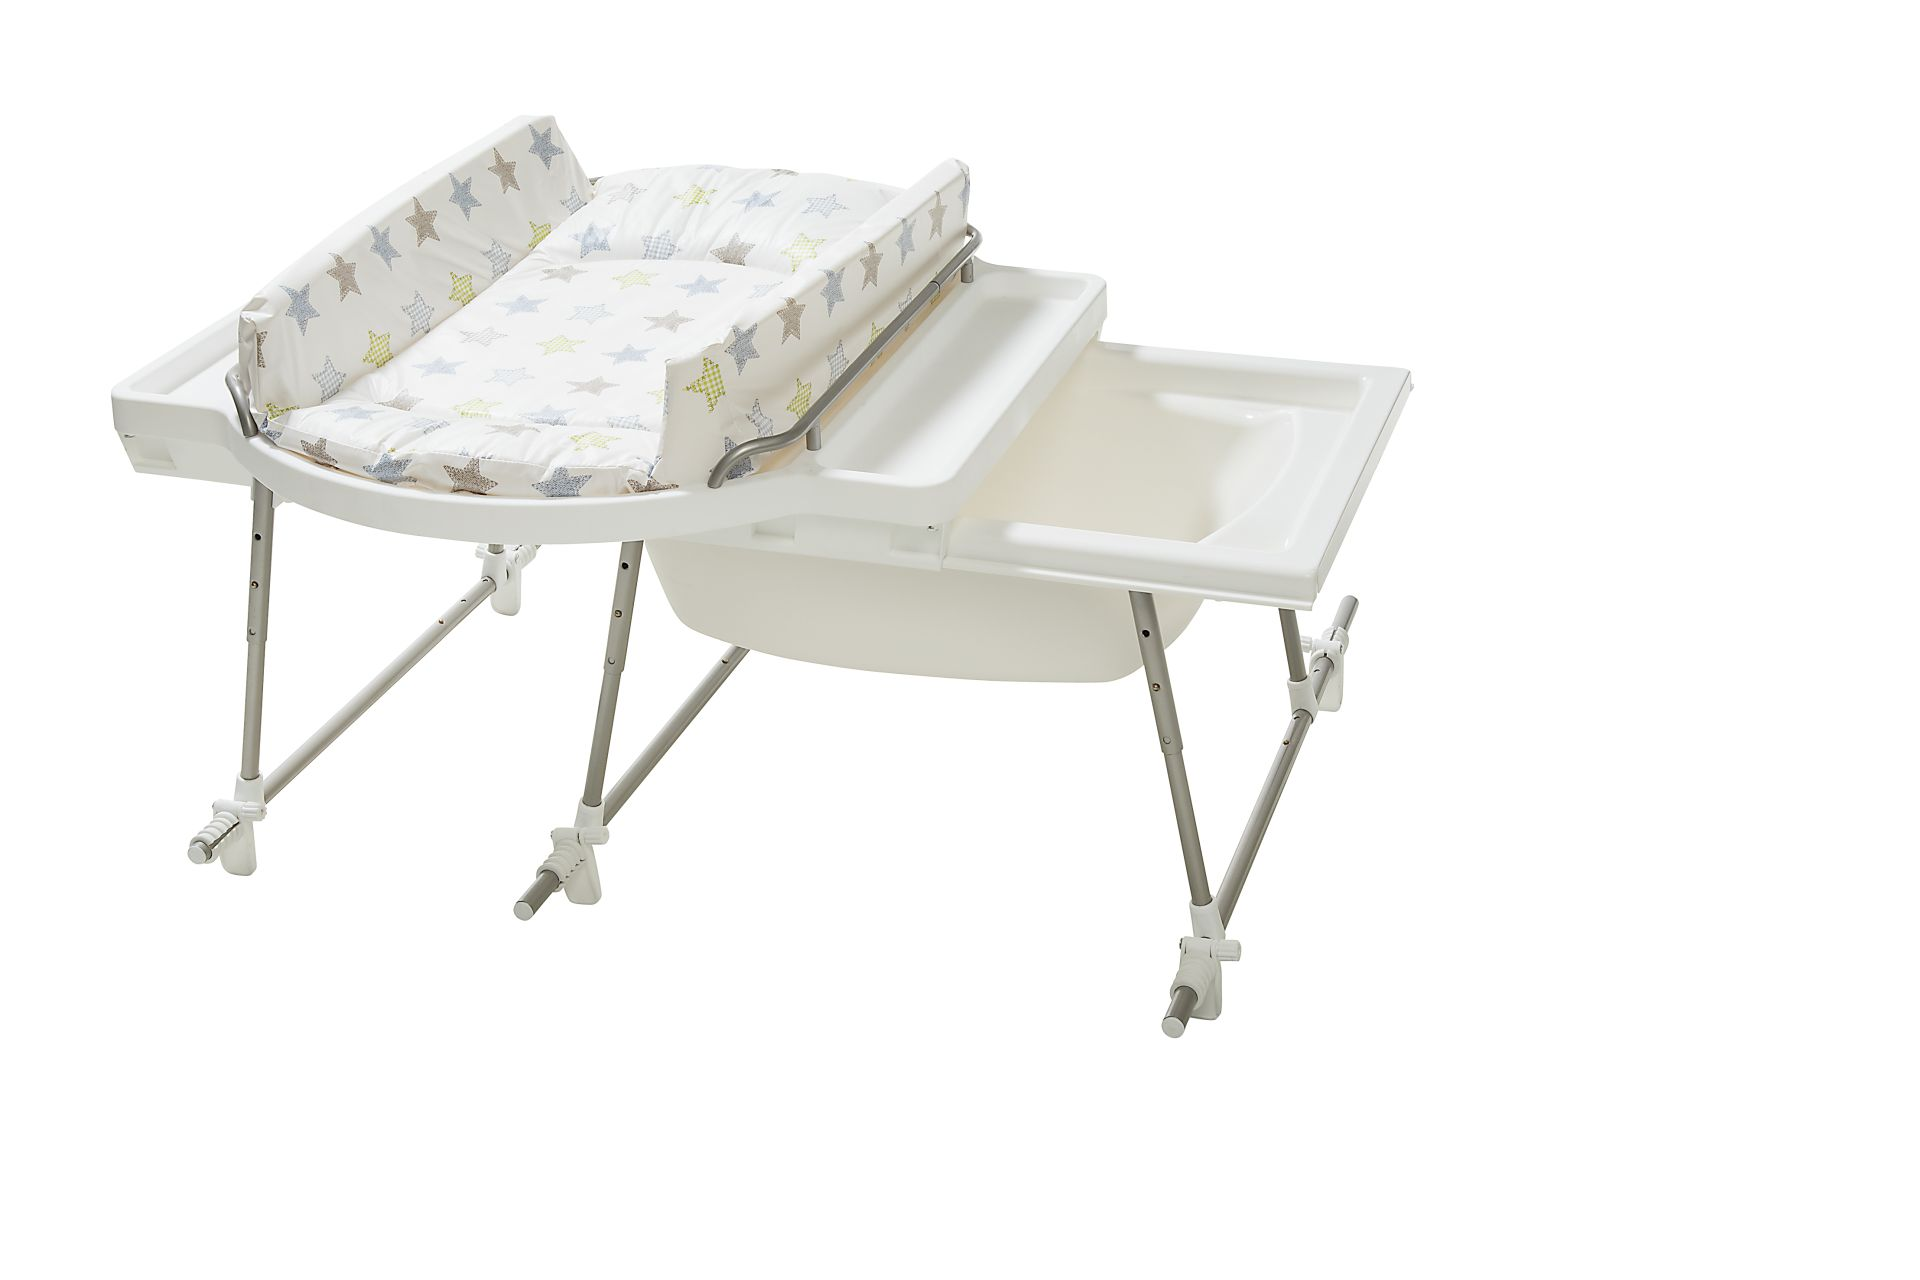 Geuther Combine Baignoire Table A Langer Aqualino Geuther